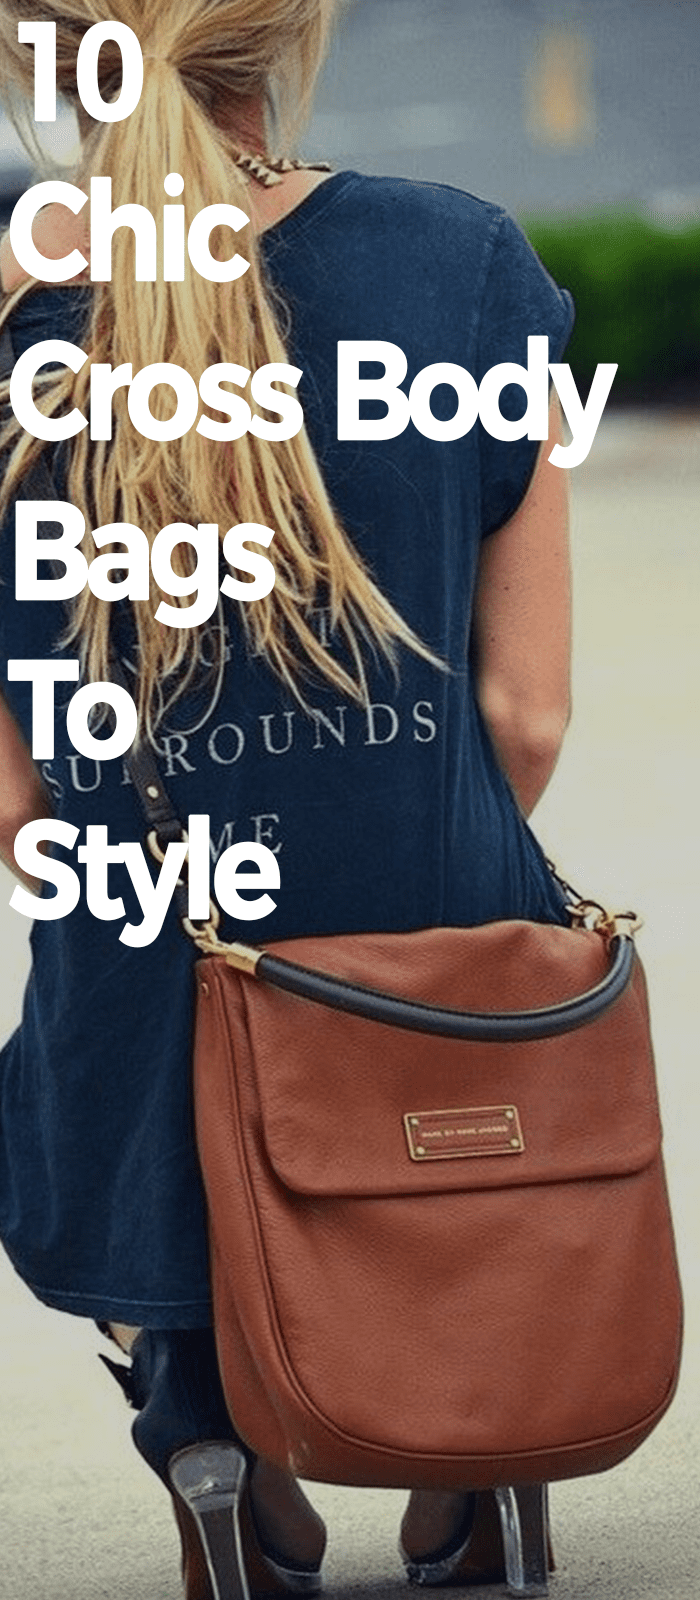 10 Chic Cross Body Bags To Style.